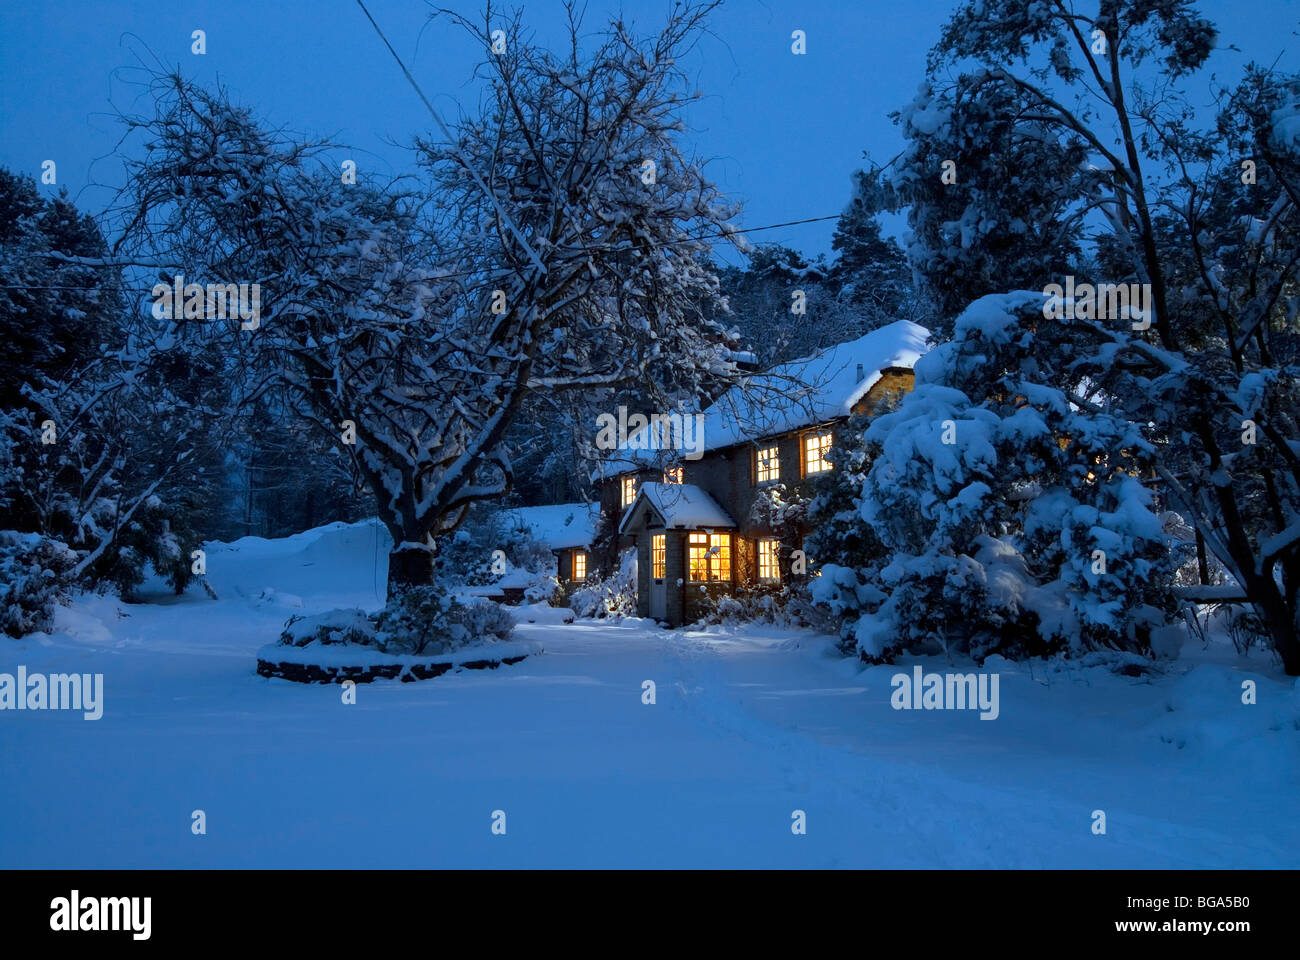 Christmas card image of a snowy landscape scene with cozy for Christmas landscape images